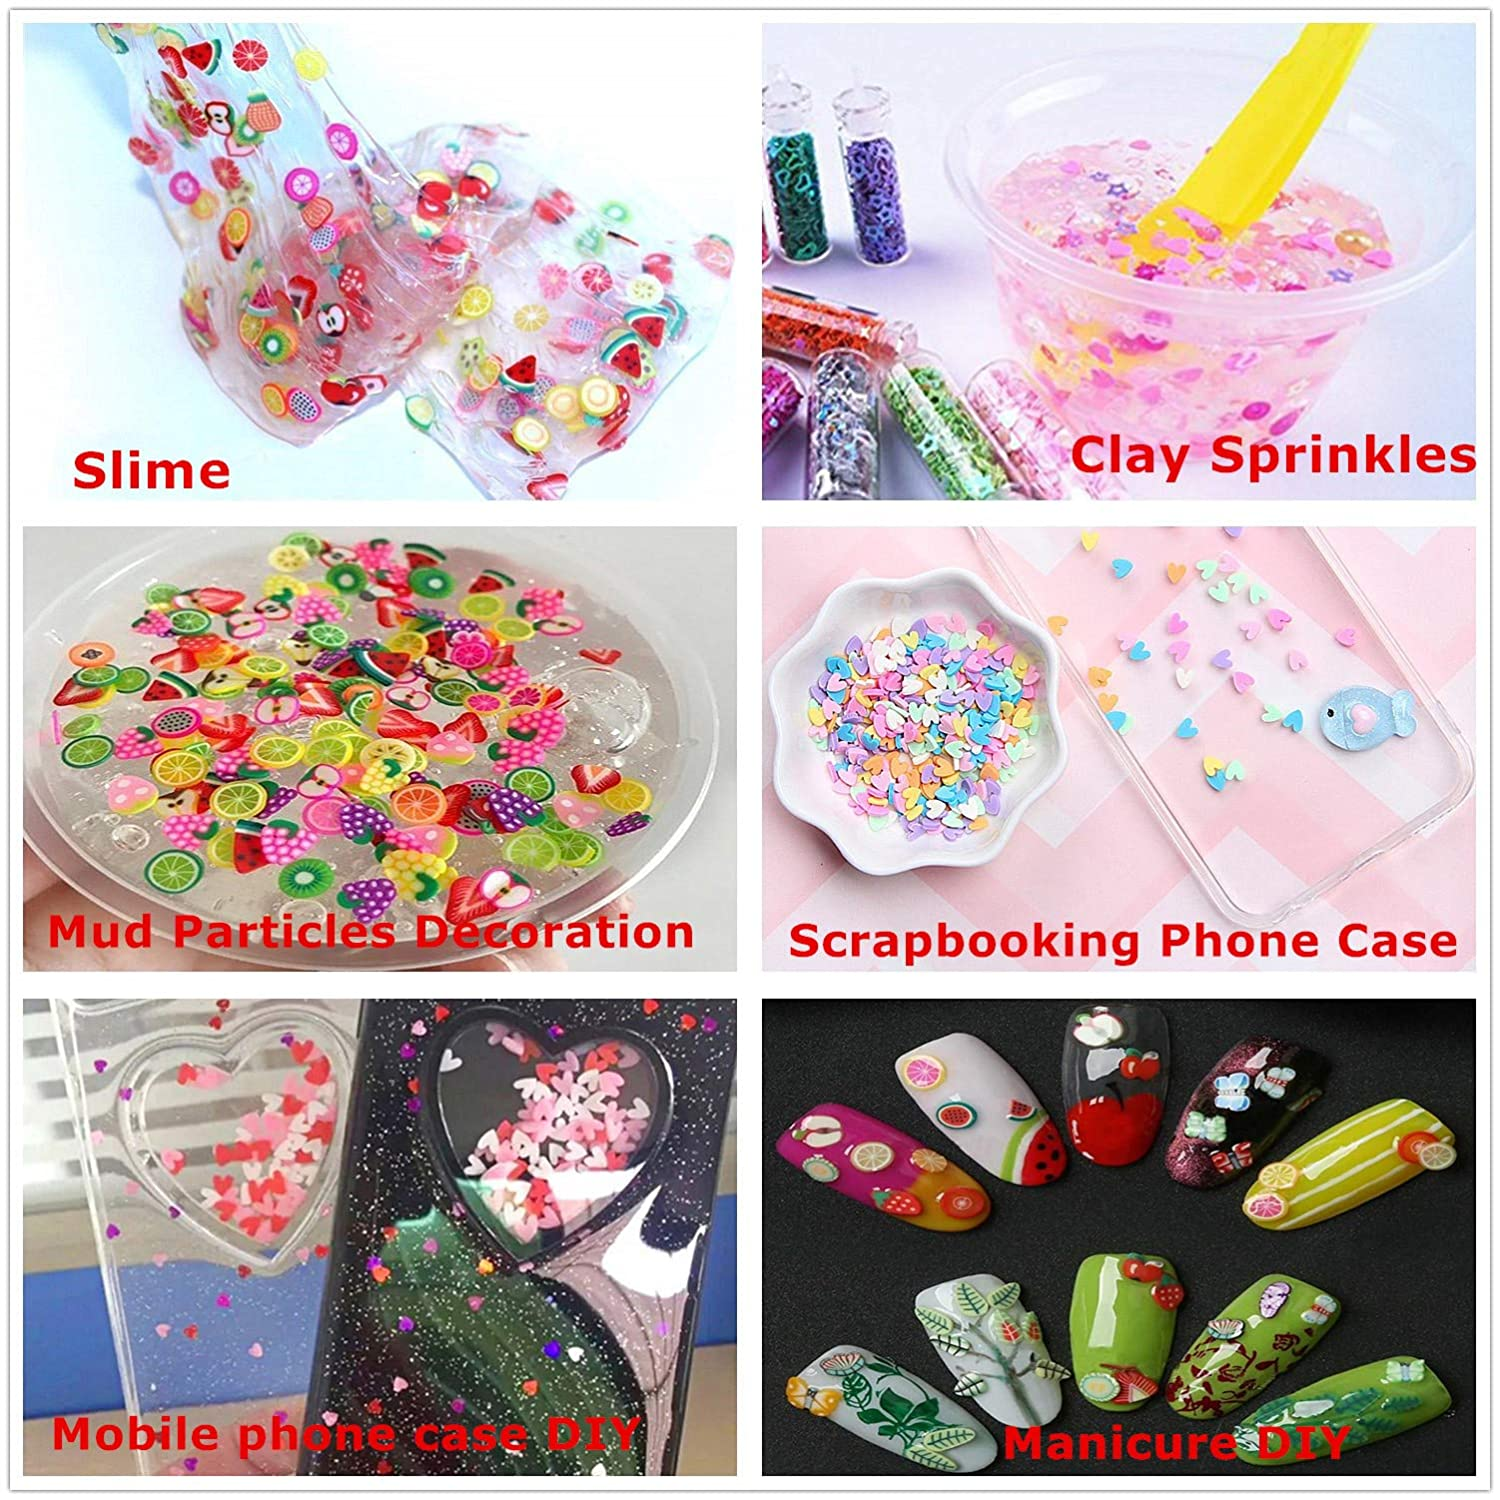 Toys & Hobbies Shop For Cheap 100g Accessories Clay Sprinkles Decoration For Slime Filler Diy Slimesupplies Fake Chocolate Cake Dessert Mud Particles Toy Learning & Education